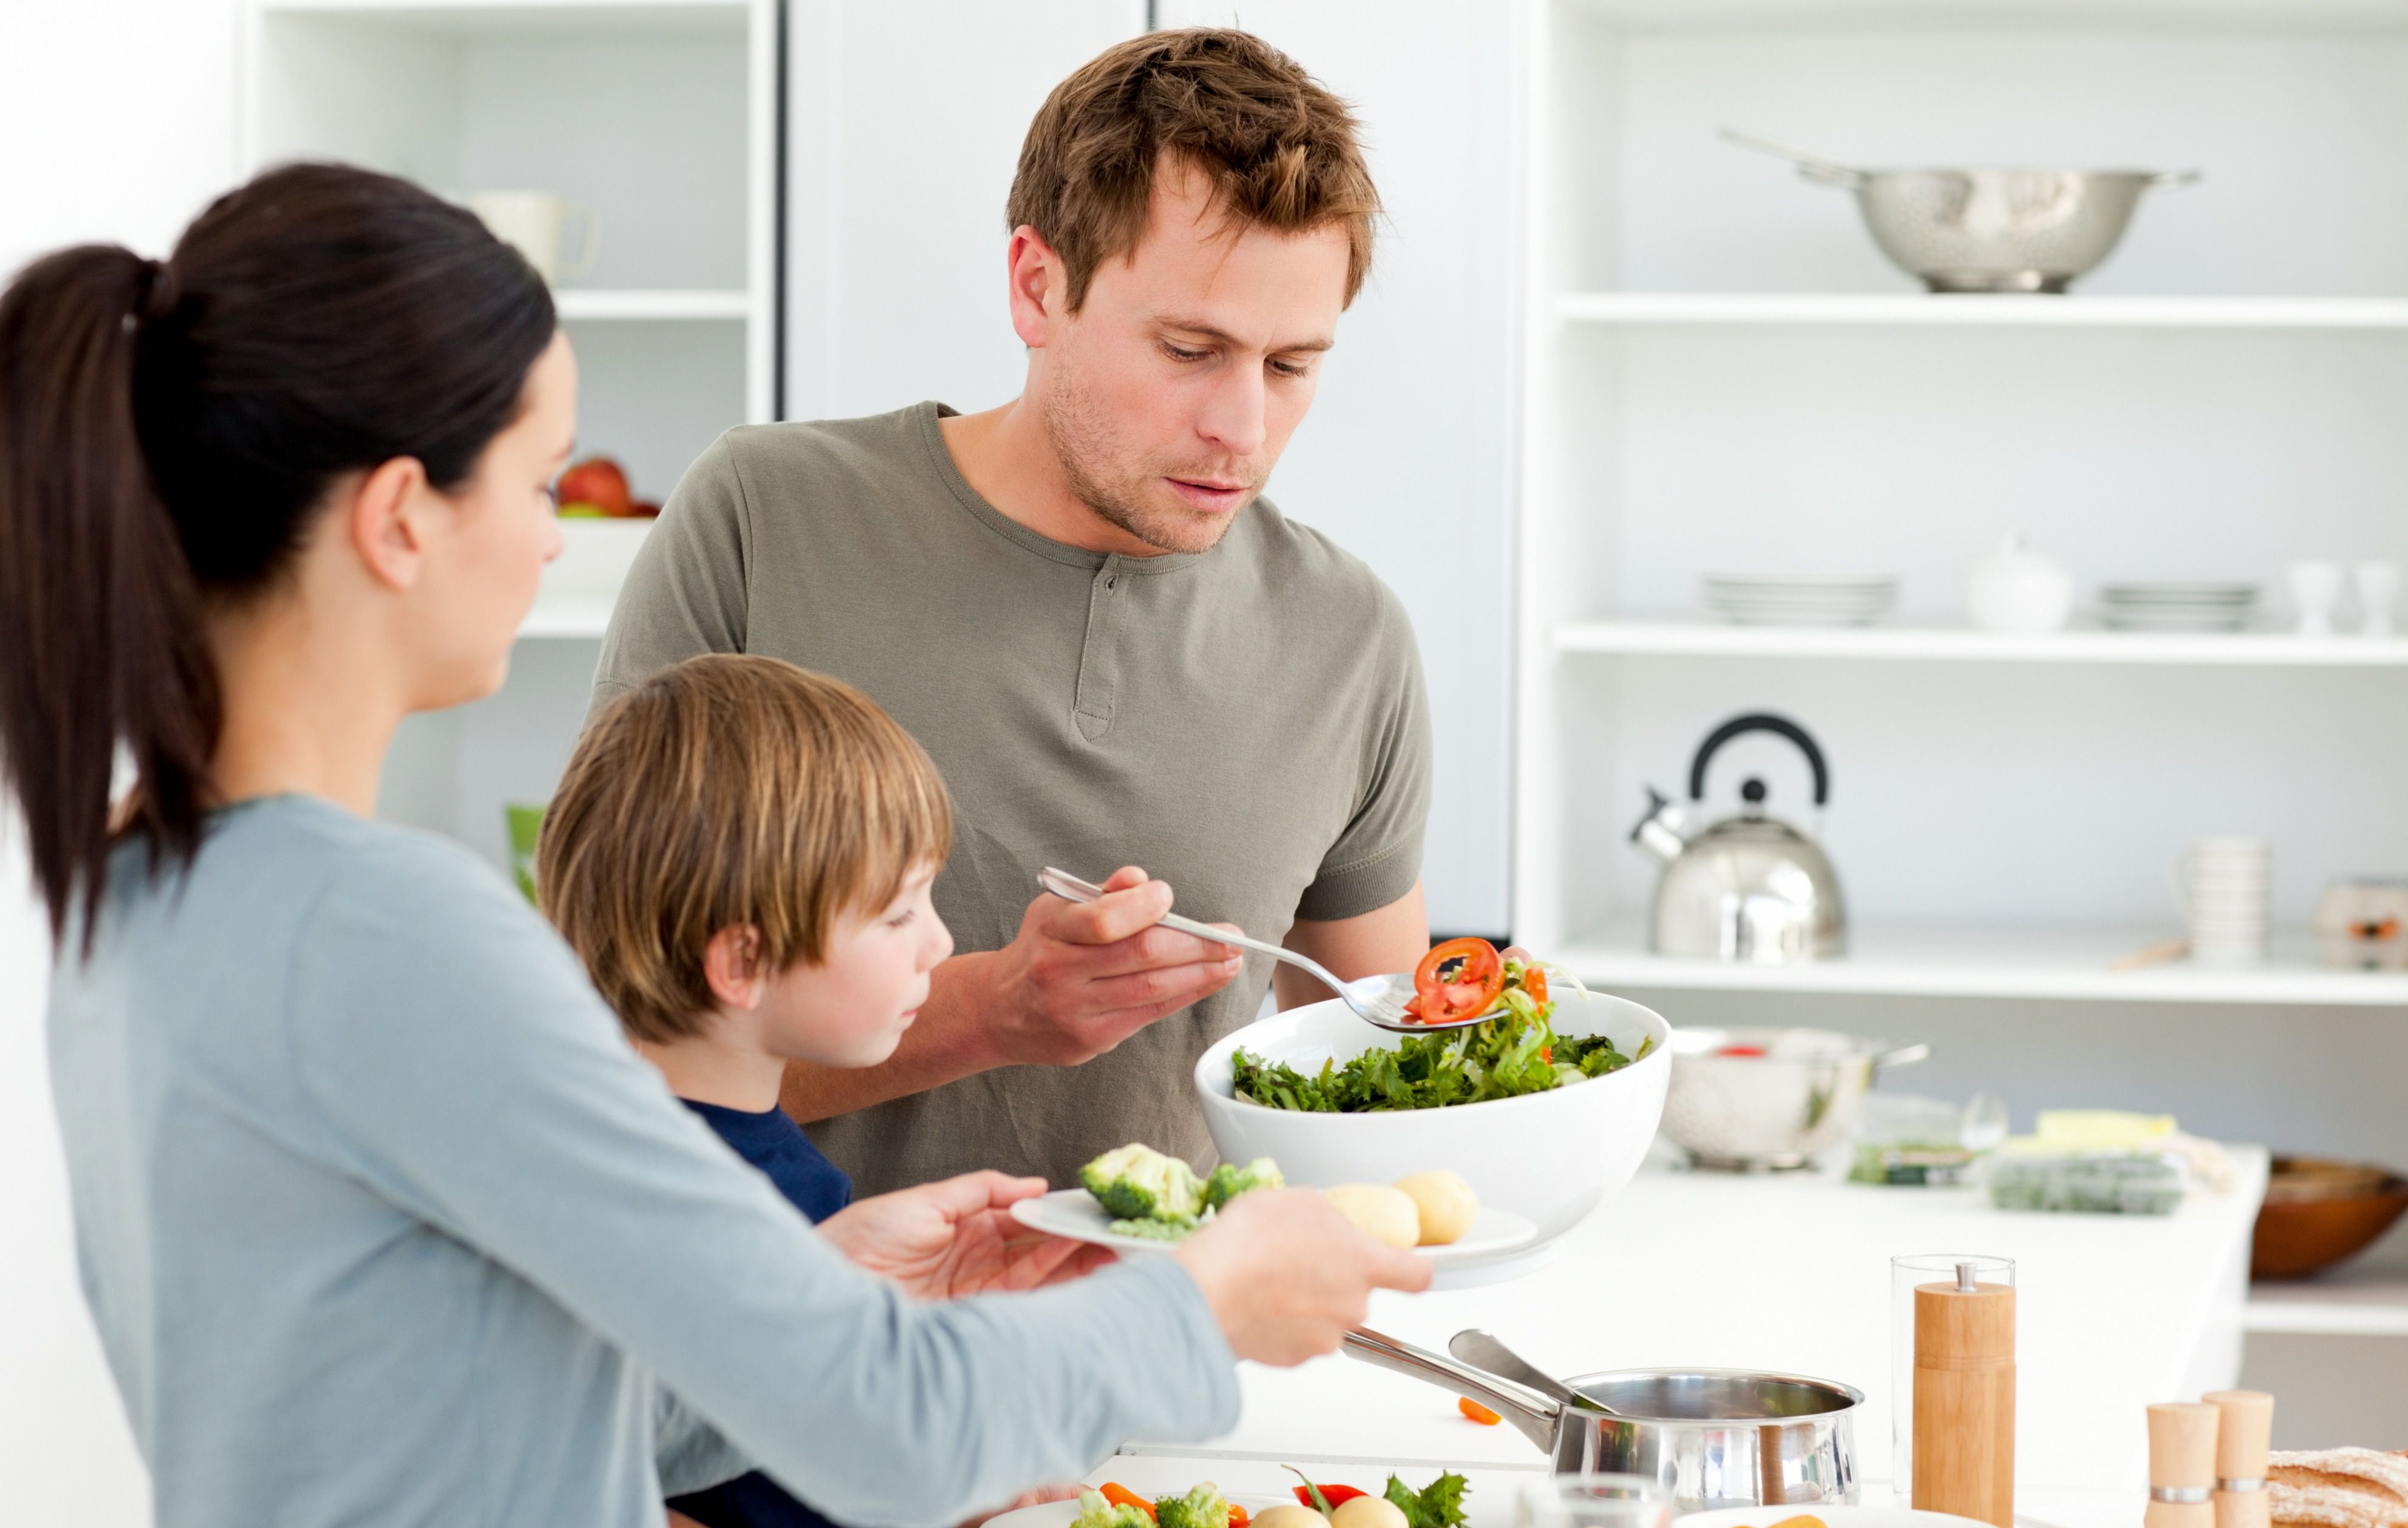 Our daughter and son-in-law are strict vegetarians. What if our grandson wants to eat regular food?